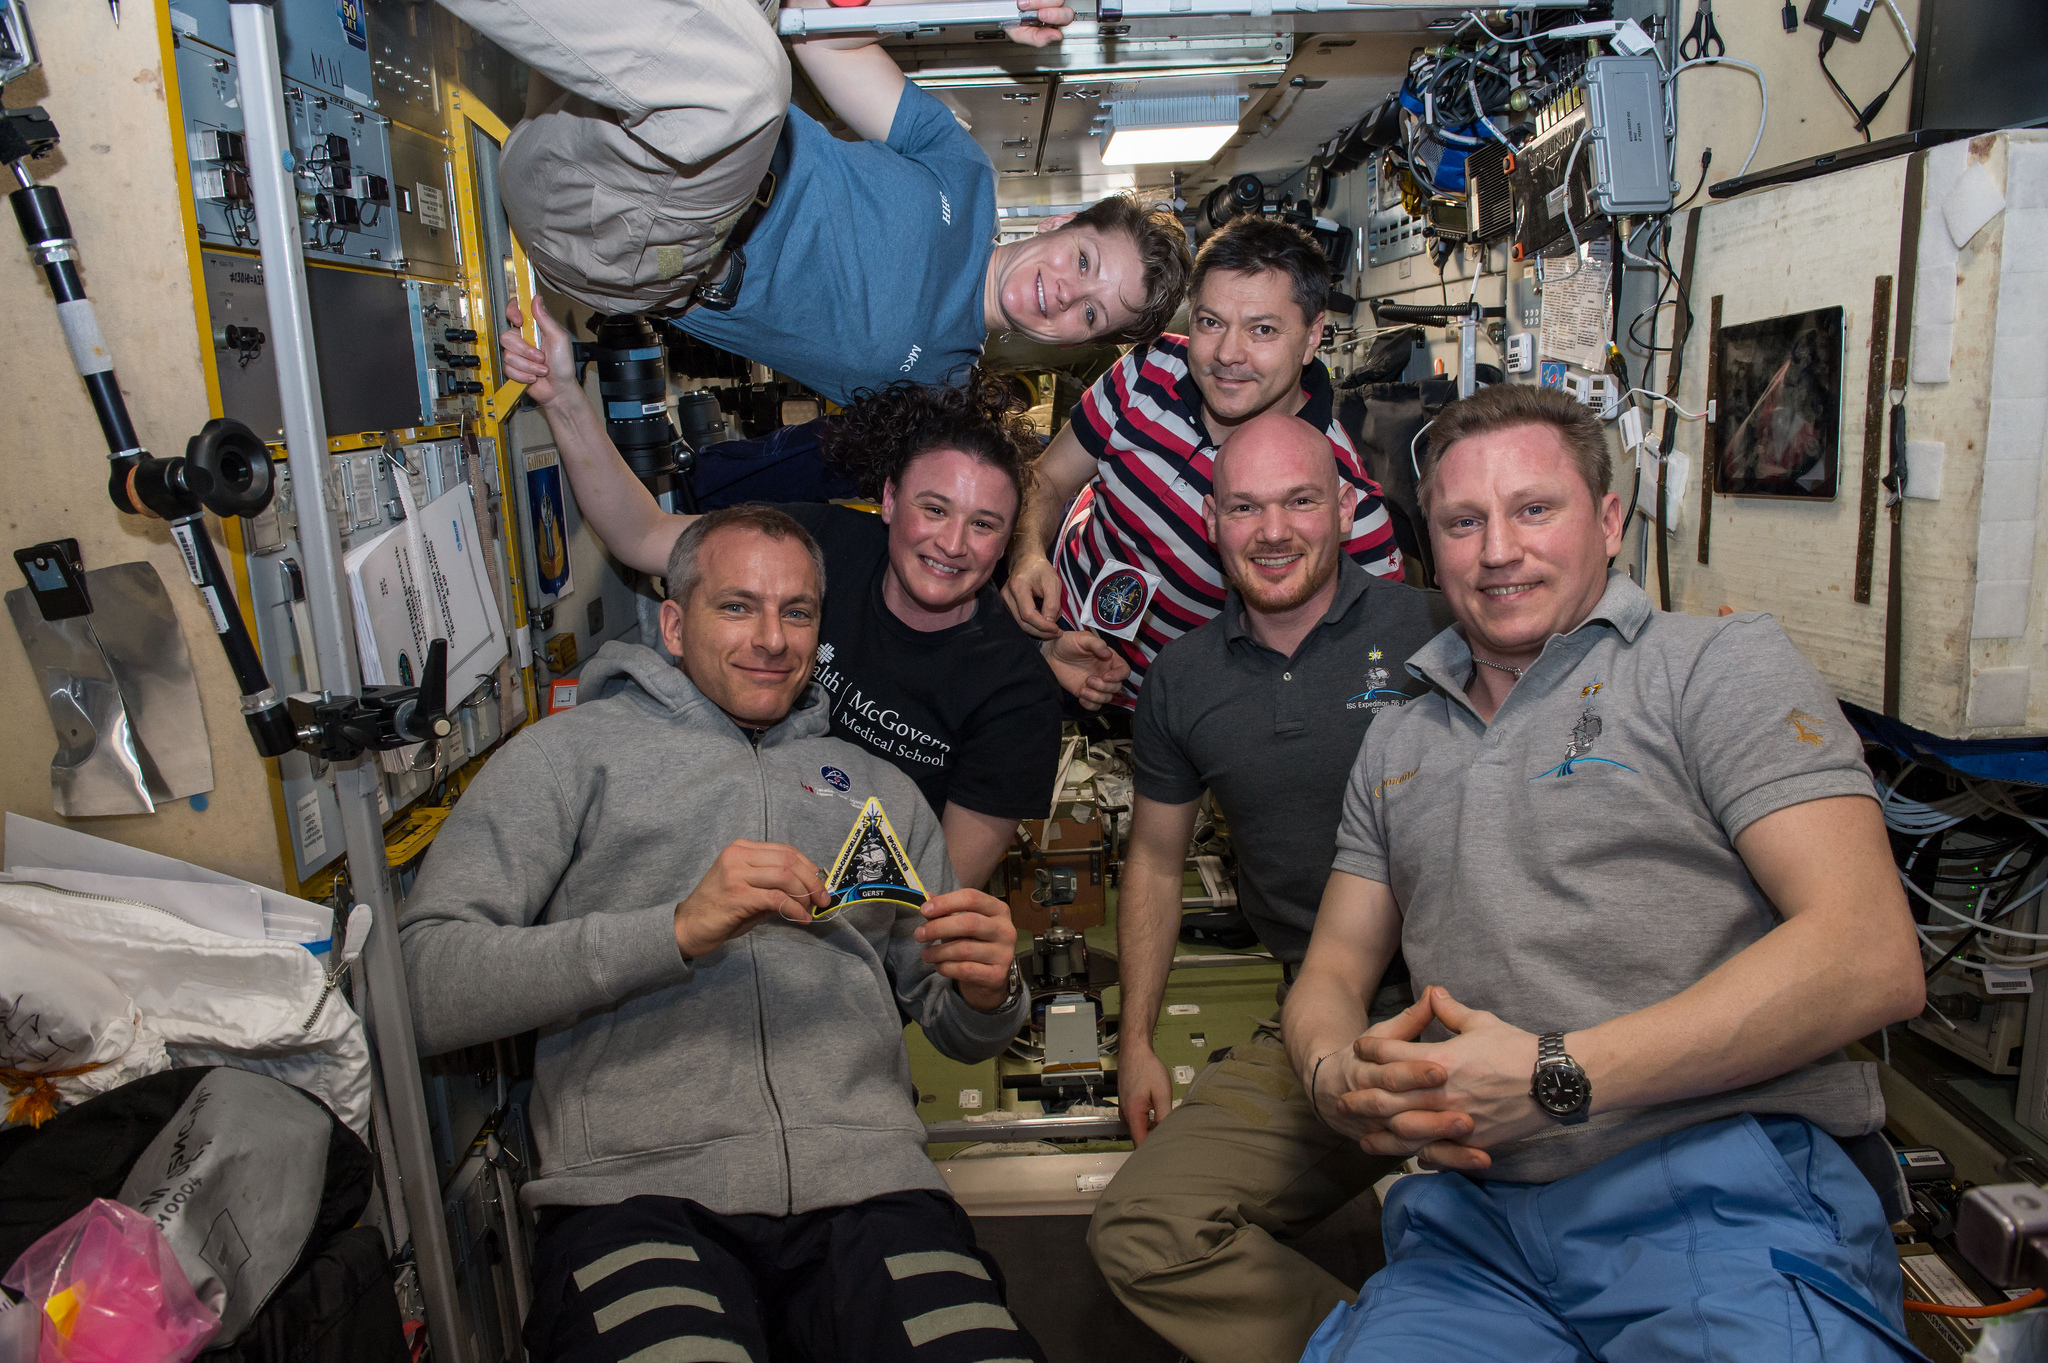 The full Expedition 57 crew after Soyuz MS-11 arrived. Bottom row, from left to right: David Saint-Jacques, Serena Aunon-Chancellor, Alexander Gerst and Sergey Prokopyev. Top row from left to right: Anne McClain and Oleg Kononenko. Credit: NASA